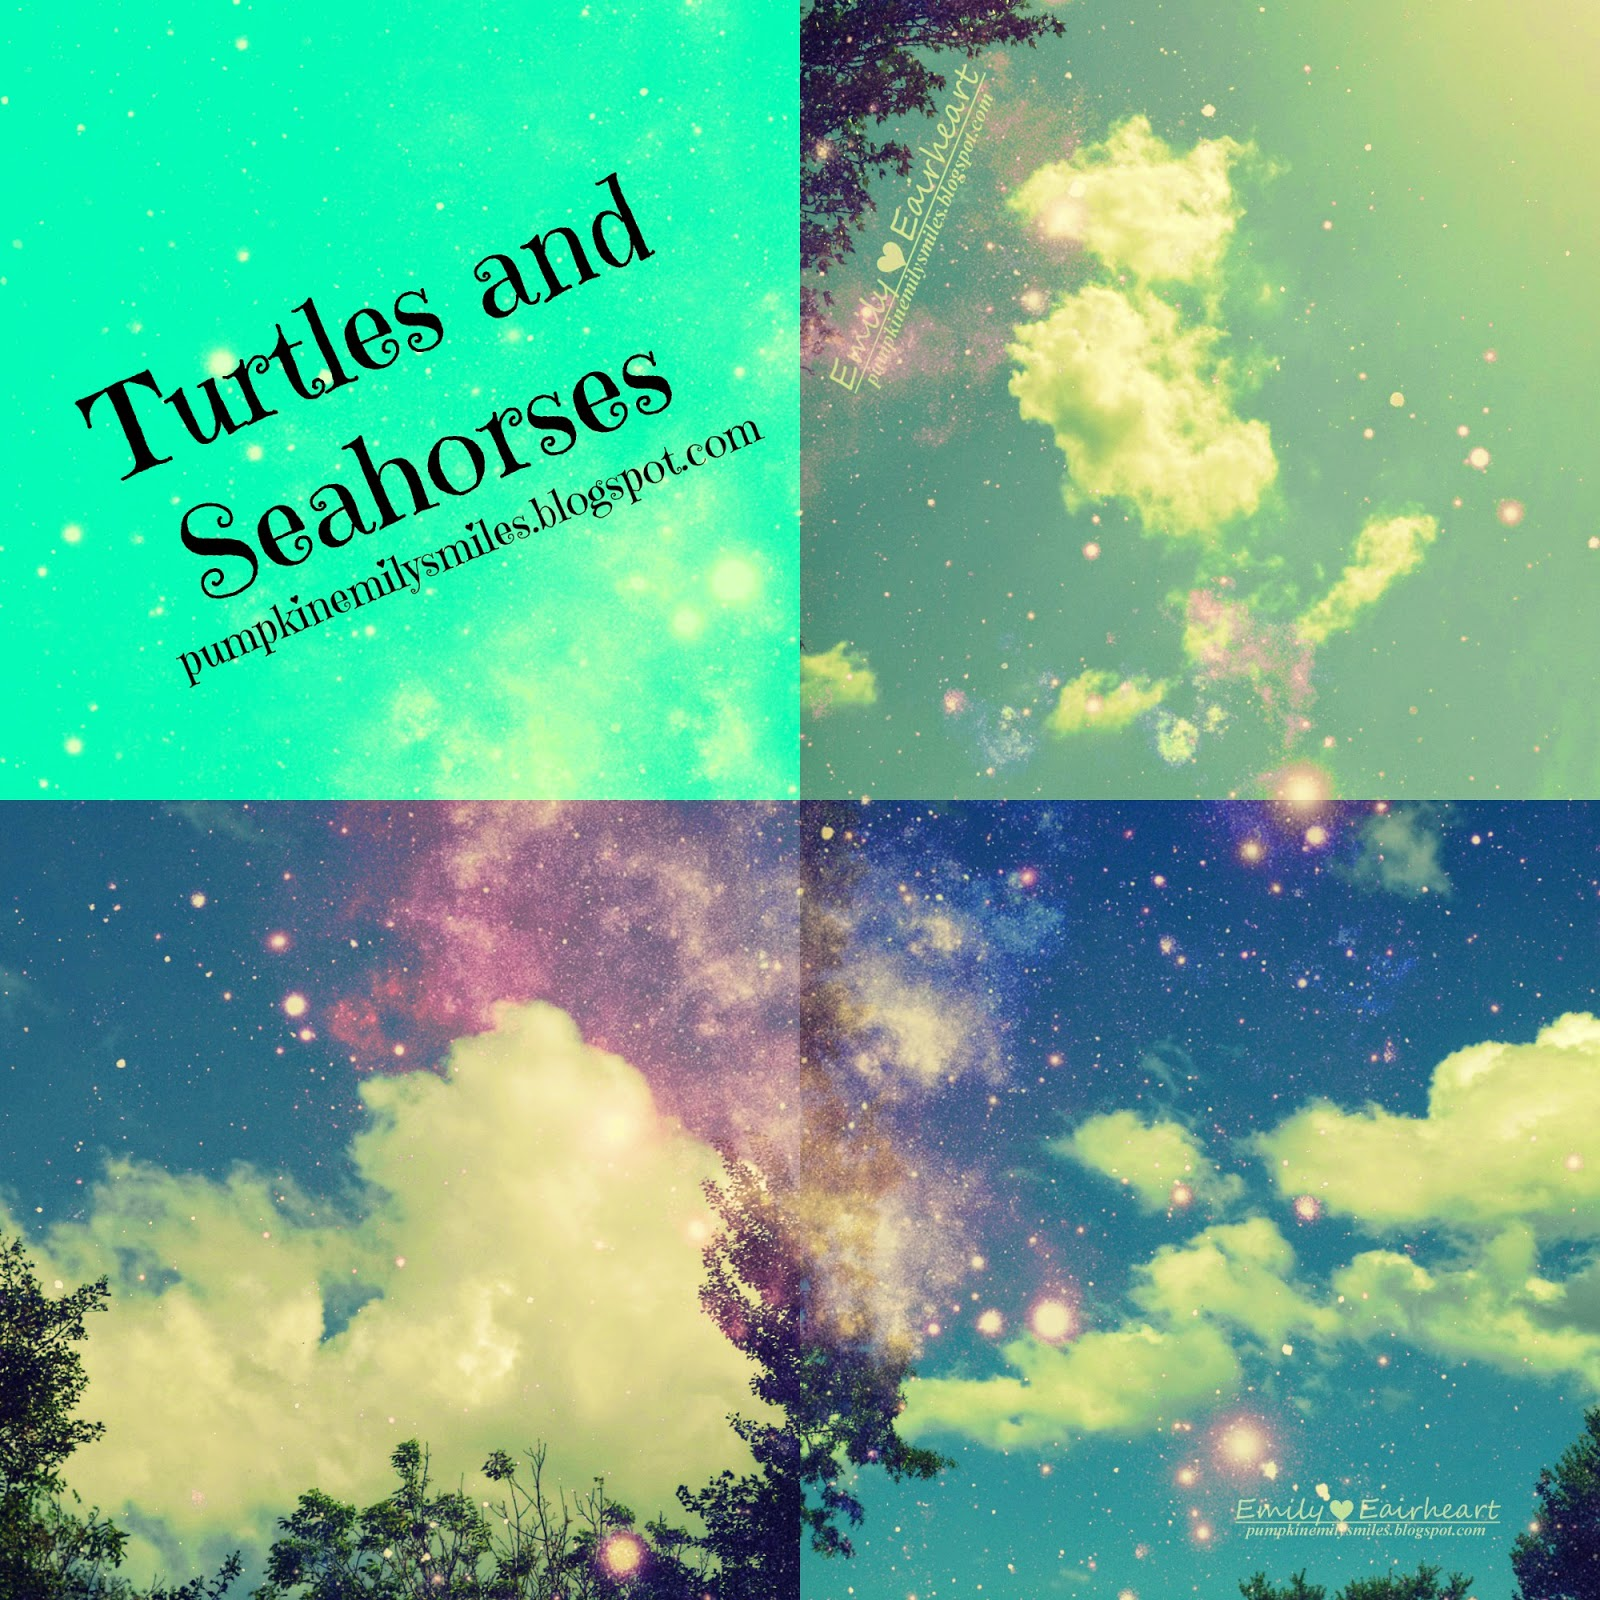 Turtles and Seahorses